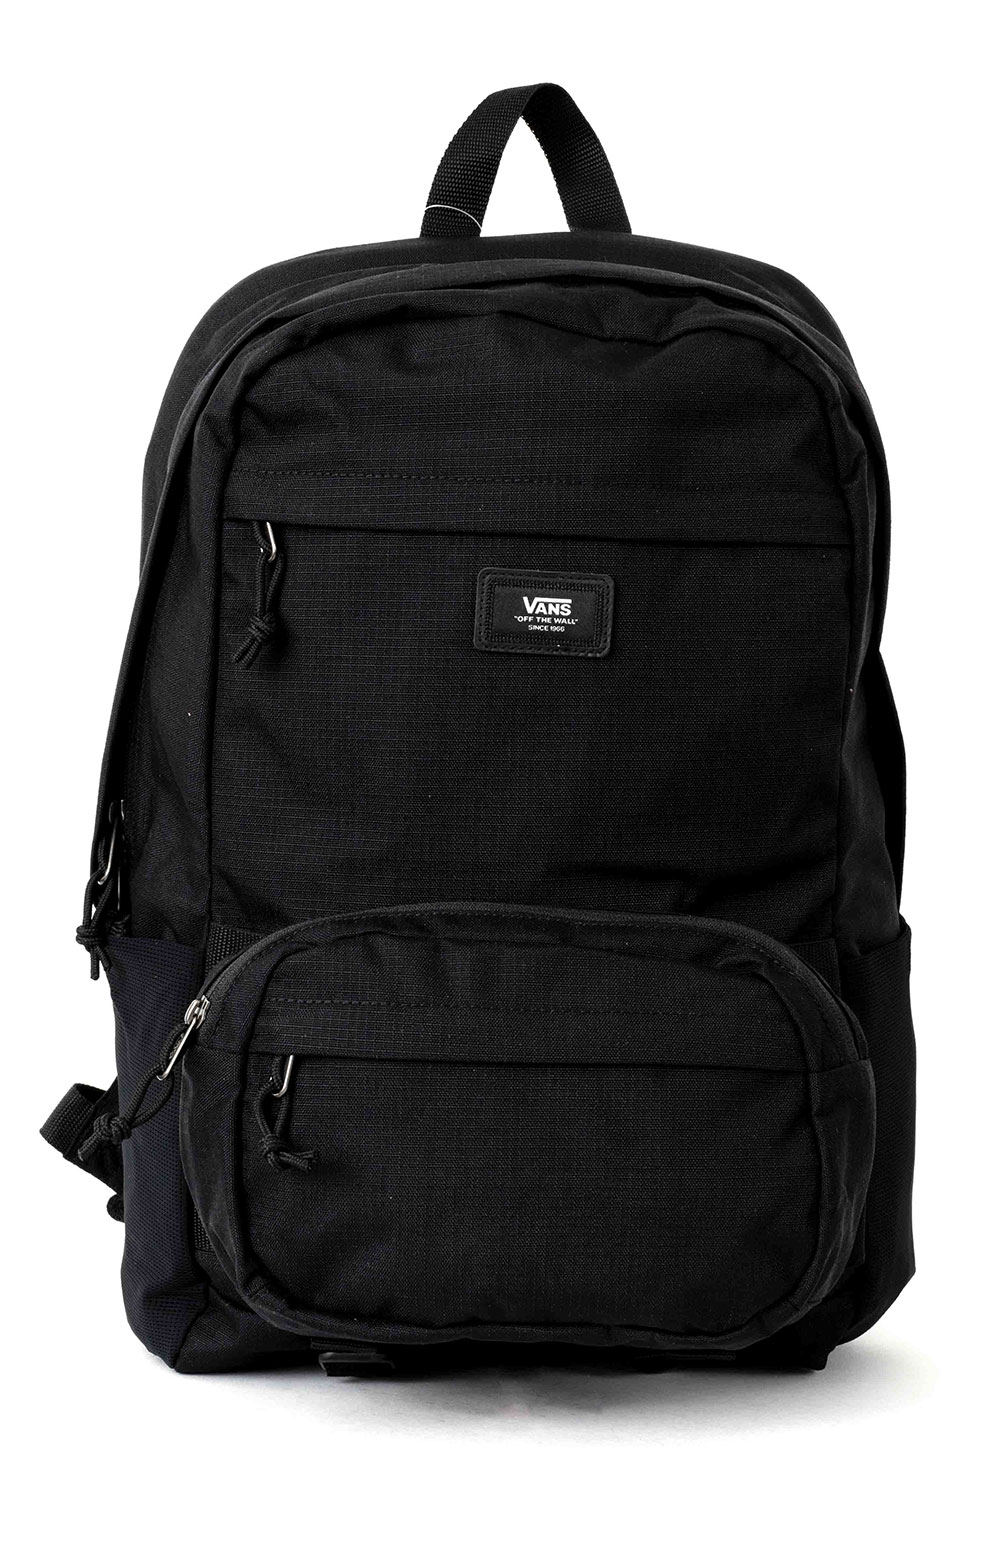 Transplant Backpack - Black Ripstop